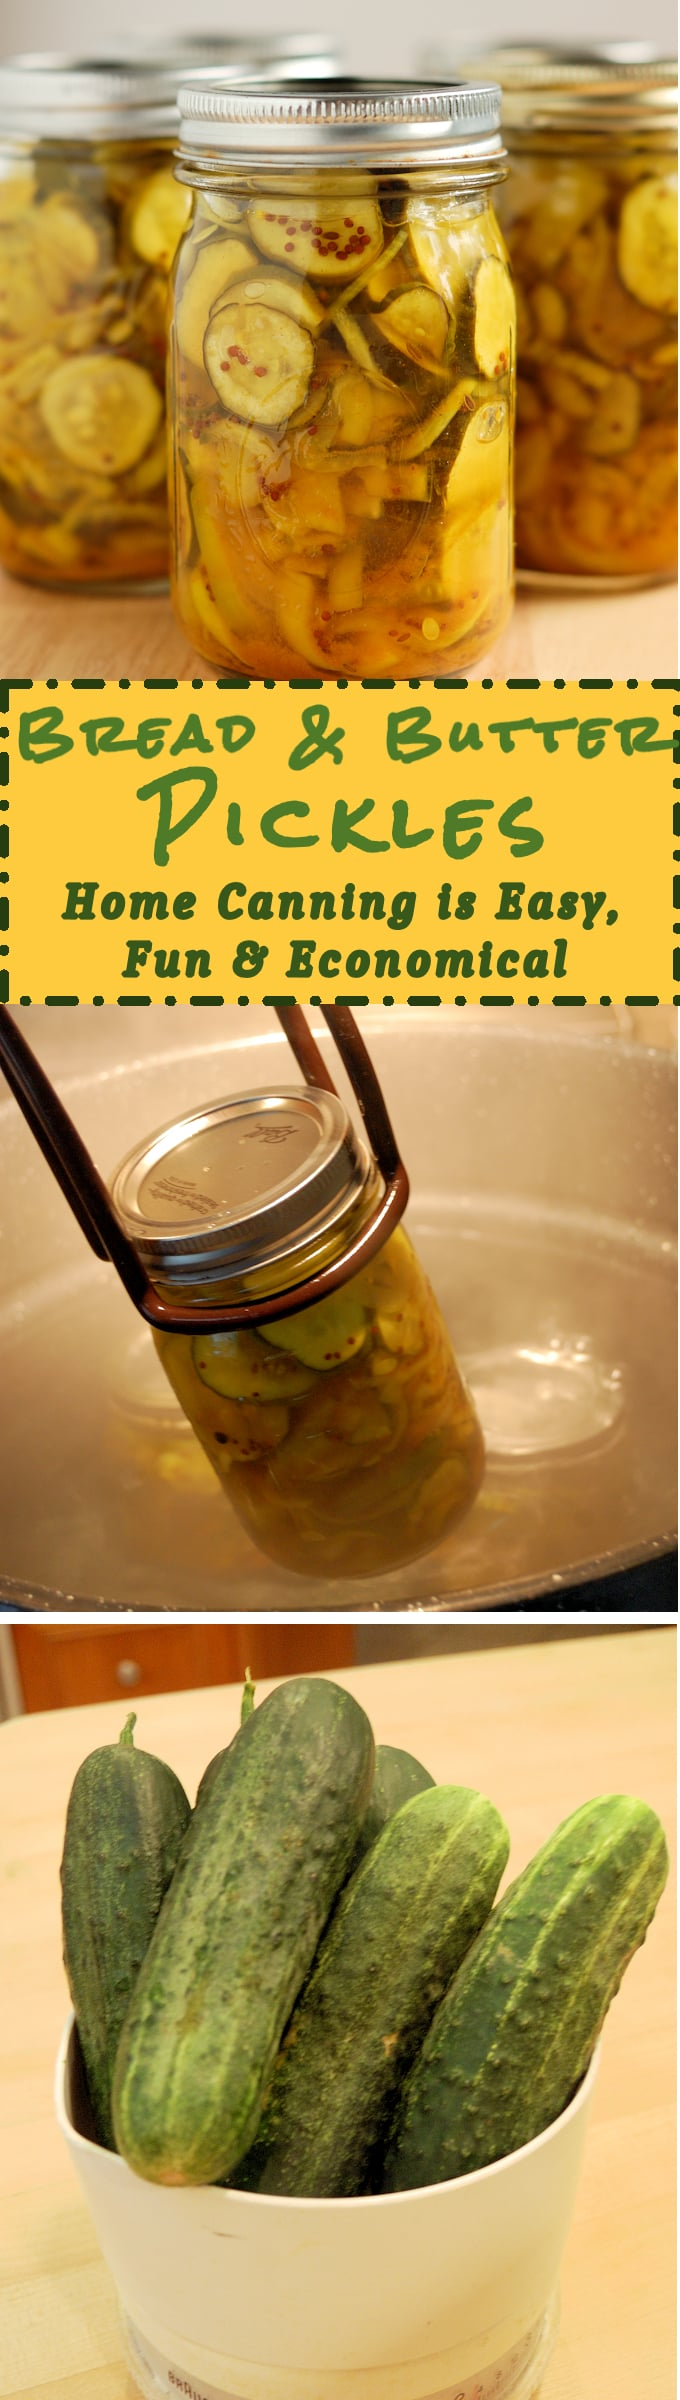 Bread & Butter Pickles are easy to make. If you've never tried home canning this is a great recipe to start with.